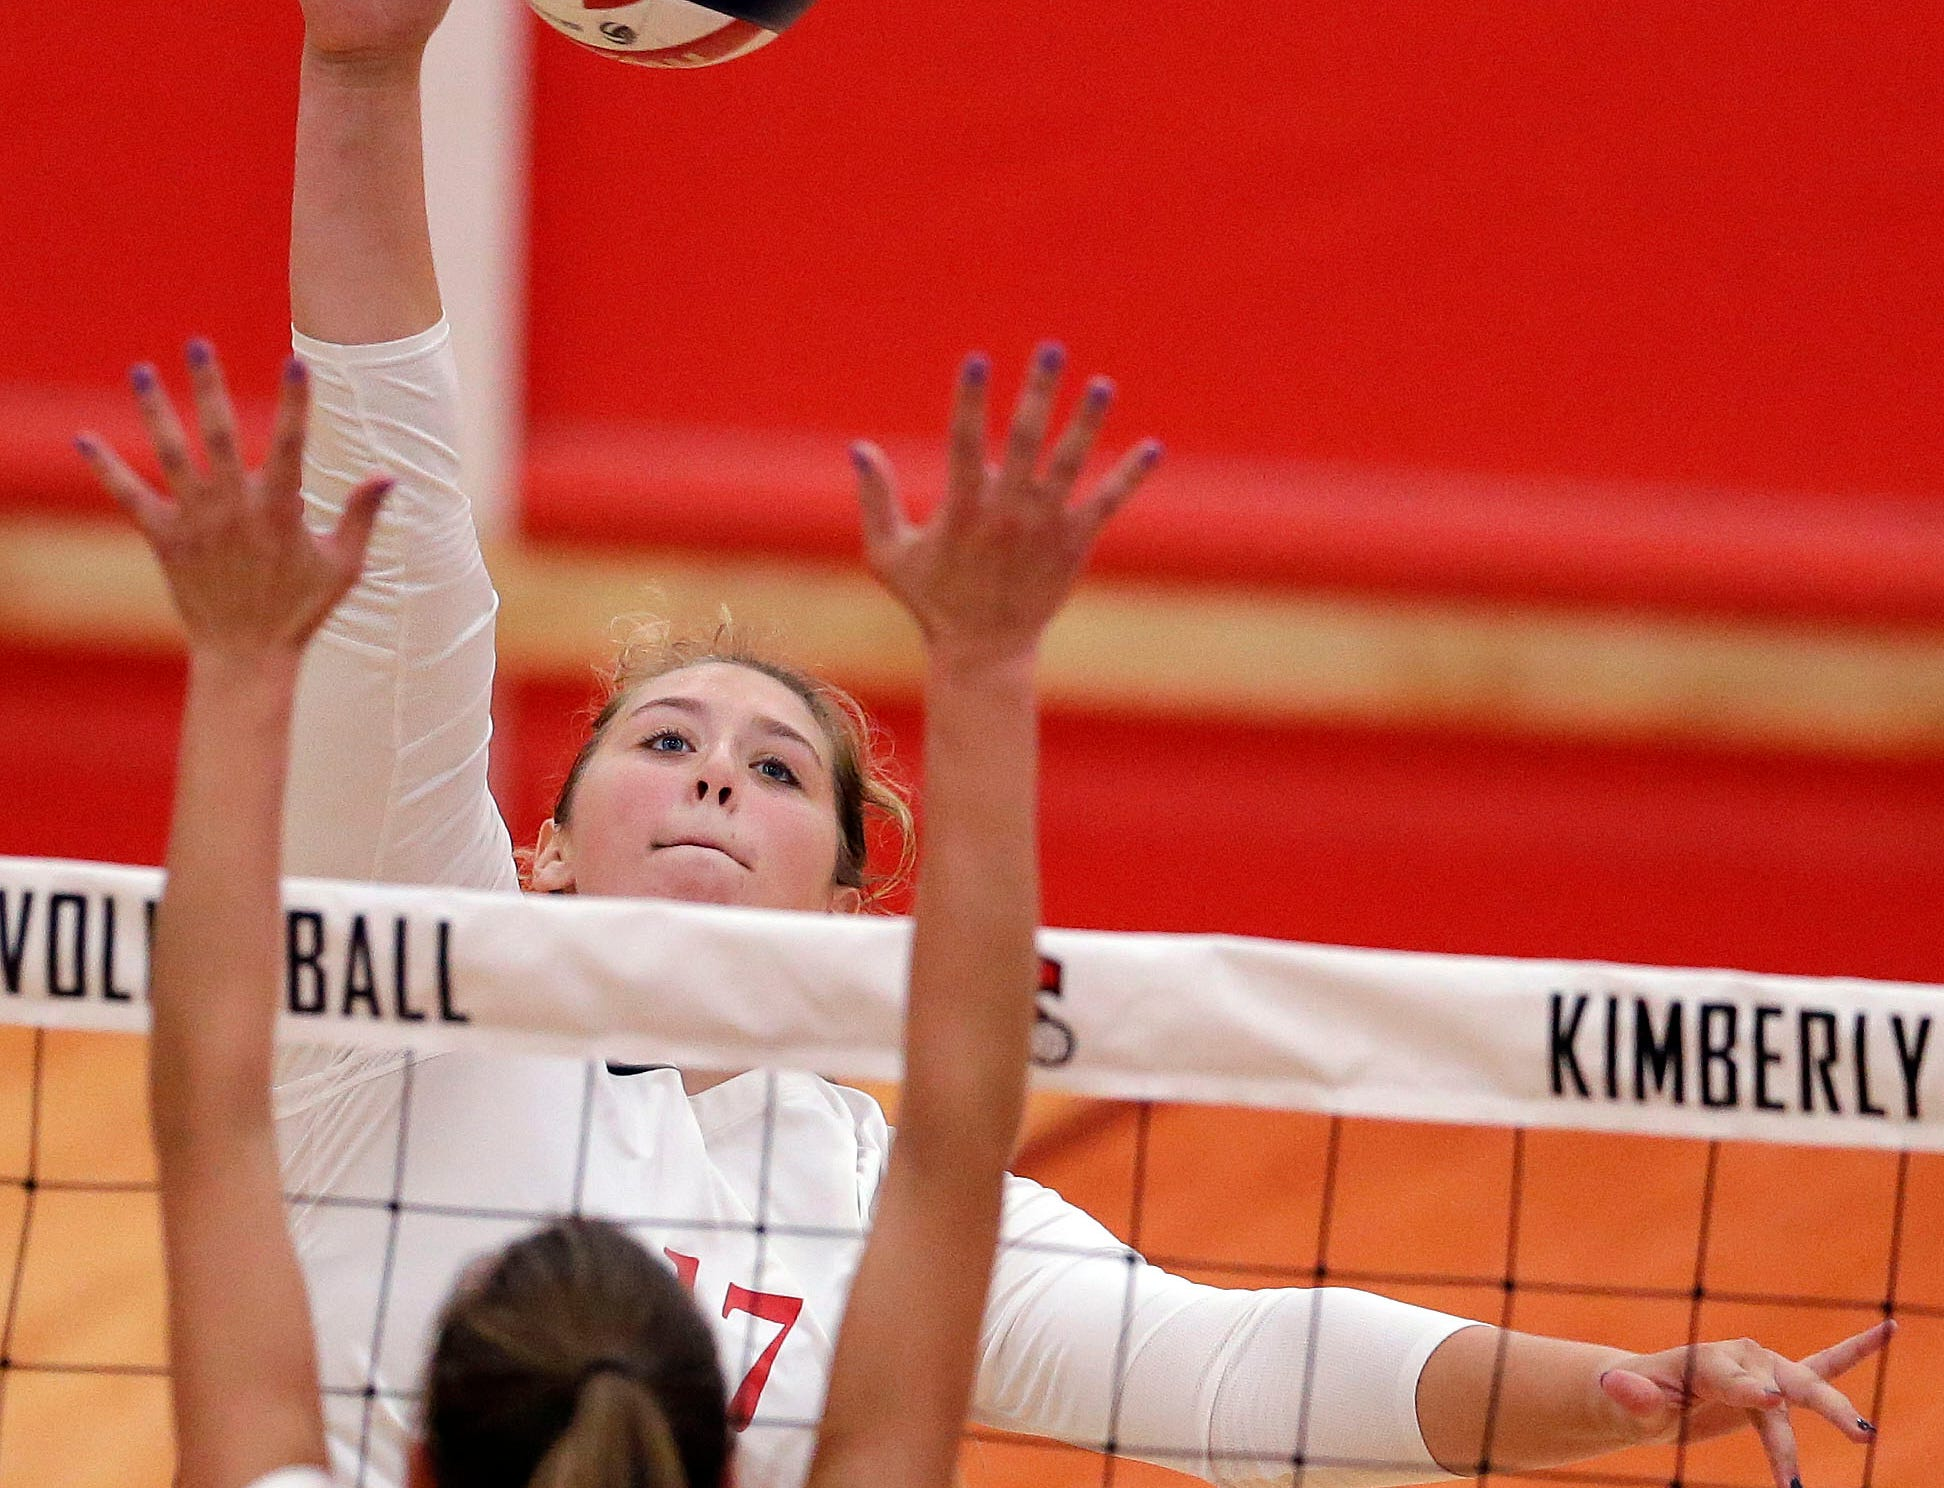 Kaitlyn Schroeder of Kimberly hits over Addison Barnes of Neenah in FVA girls volleyball Tuesday, September 11, 2018, at Kimberly High School in Kimberly, Wis.Ron Page/USA TODAY NETWORK-Wisconsin